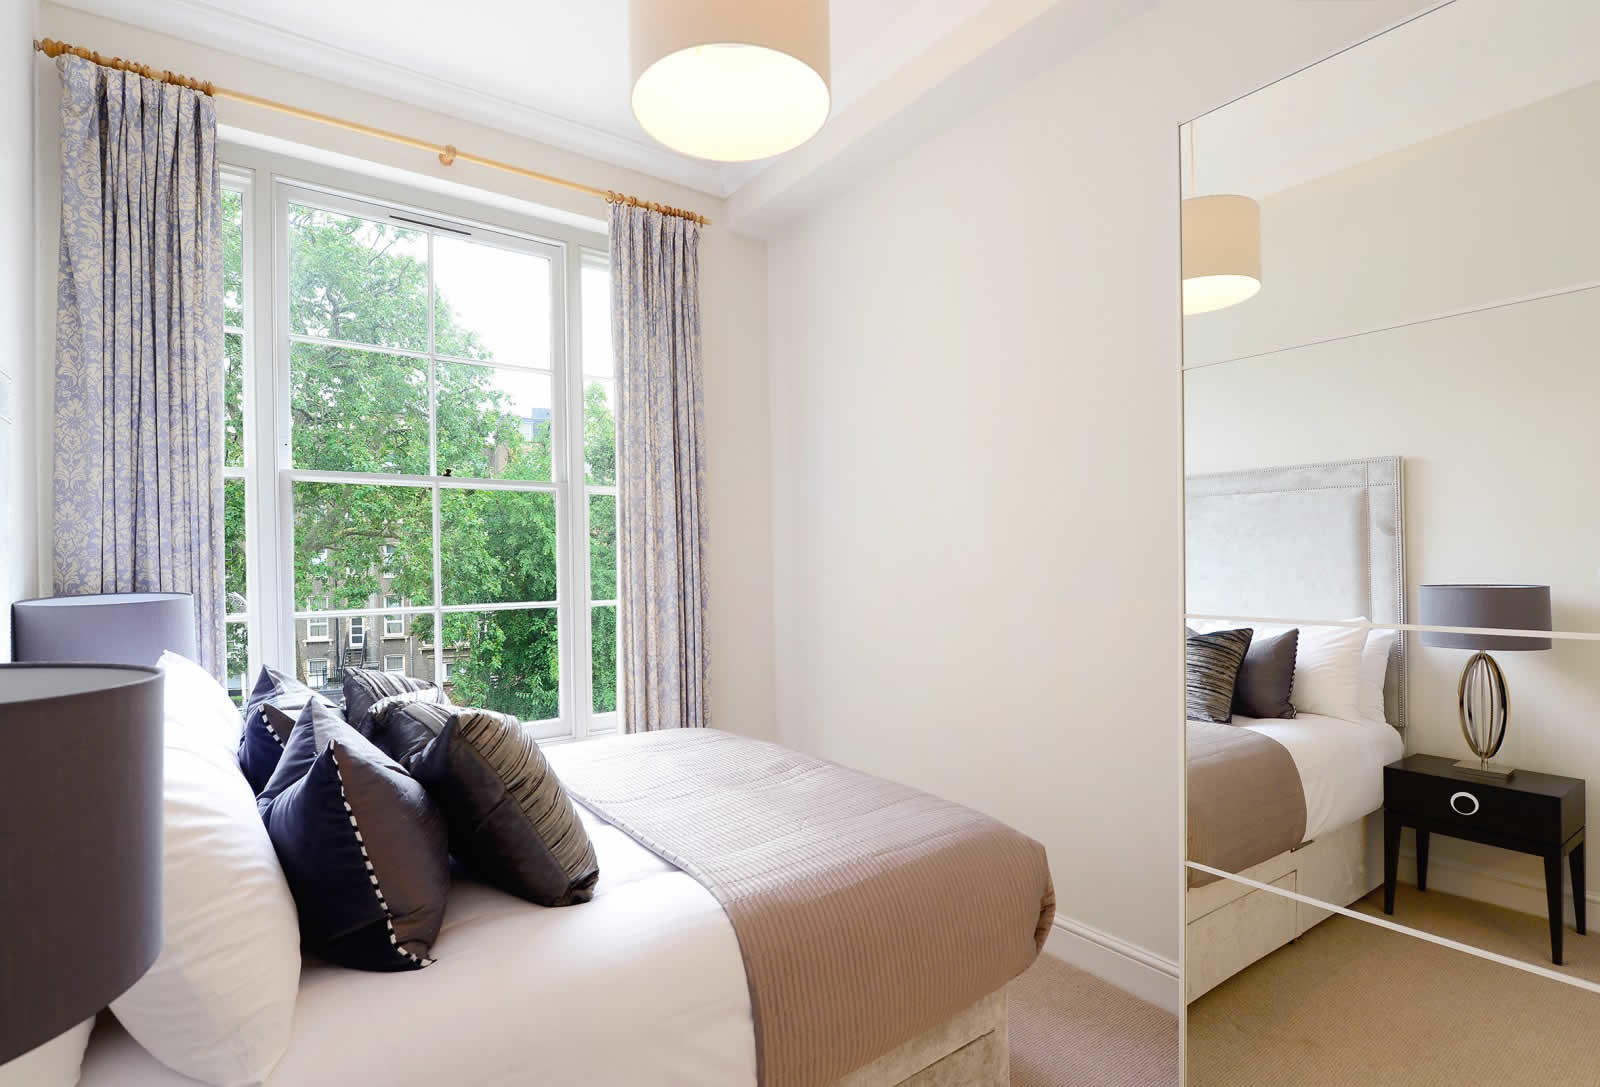 Beautiful 2 bedroom apartment for rent in kensington london 2 bedroom apartments for rent london